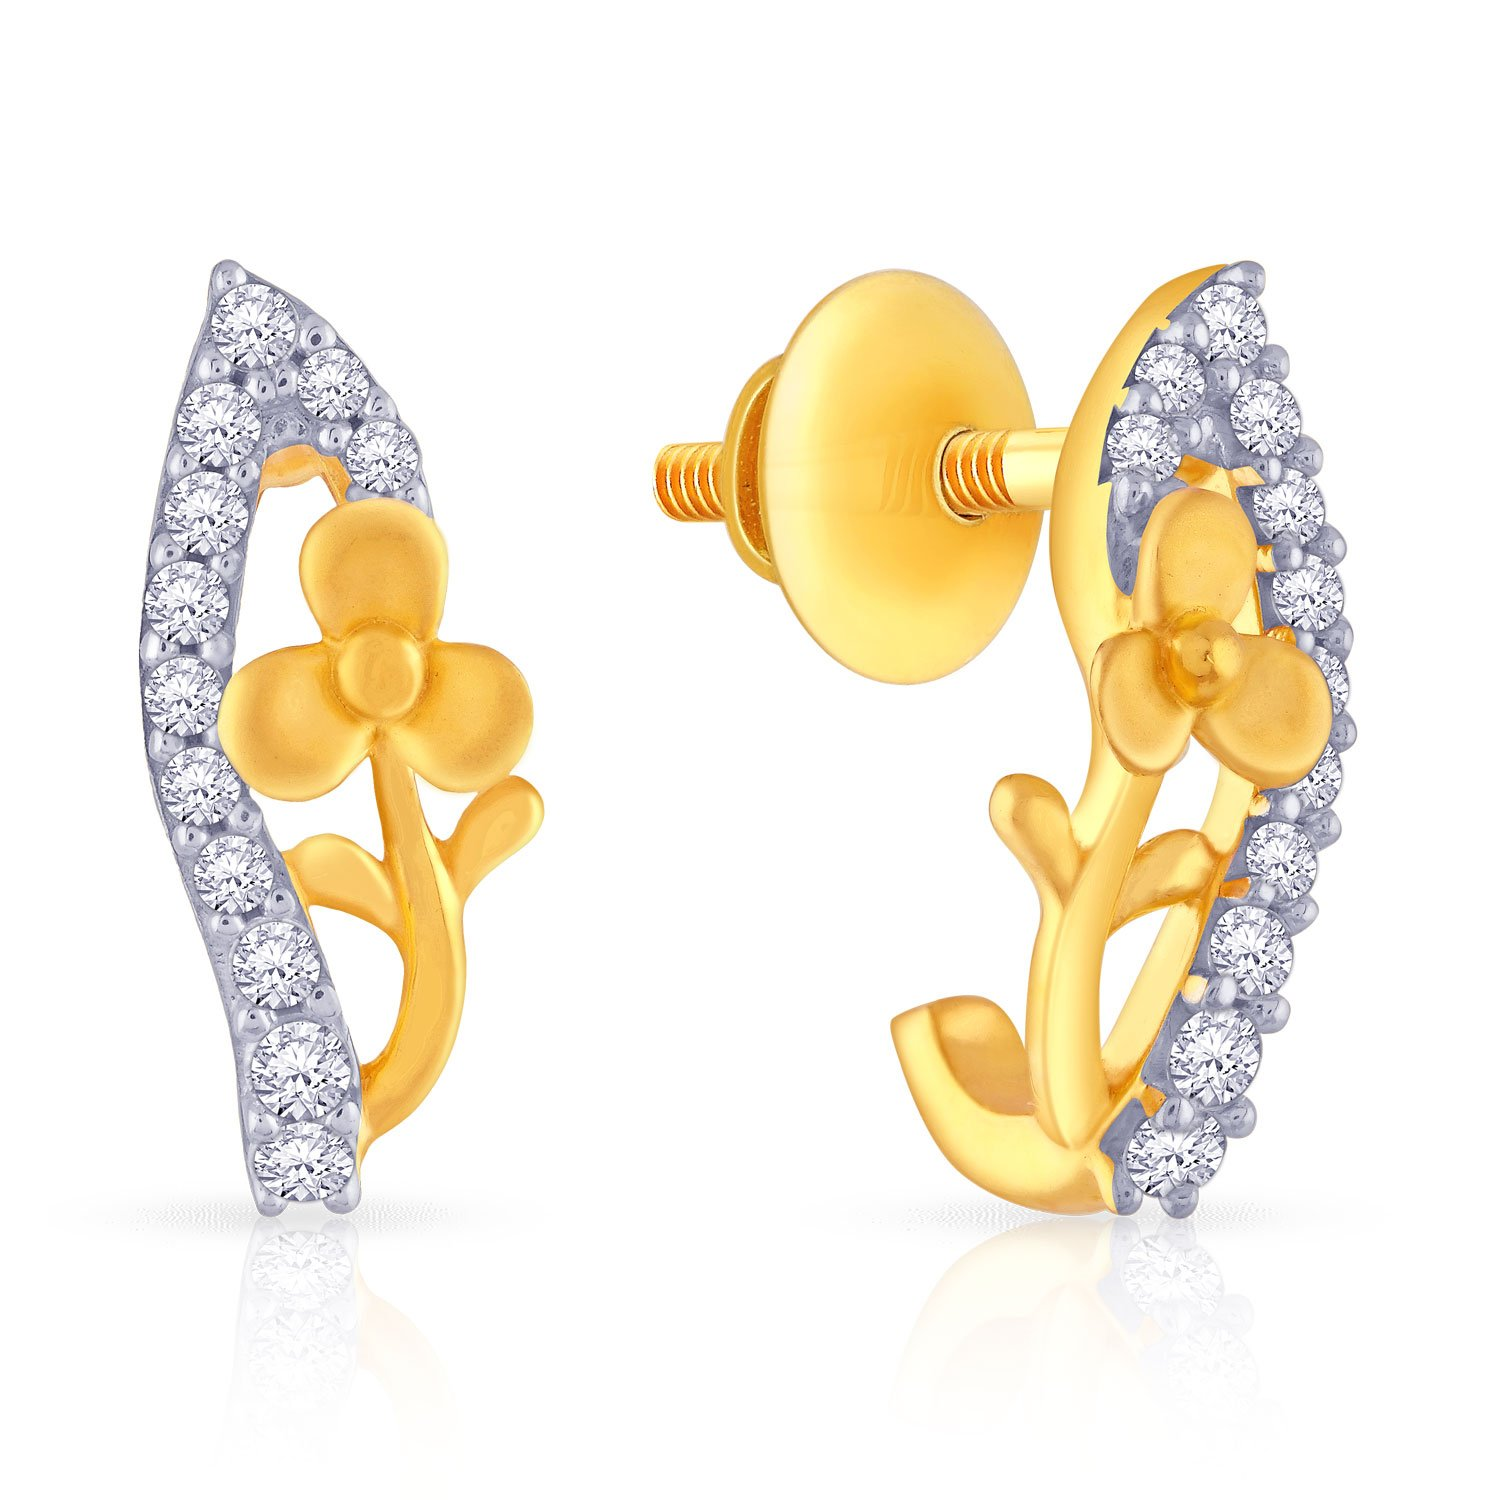 ecf404e8f Buy Malabar Gold and Diamonds Collection 22k Yellow Gold and Cubic Zirconia  Stud Earrings Online at Low Prices in India | Amazon Jewellery Store -  Amazon.in